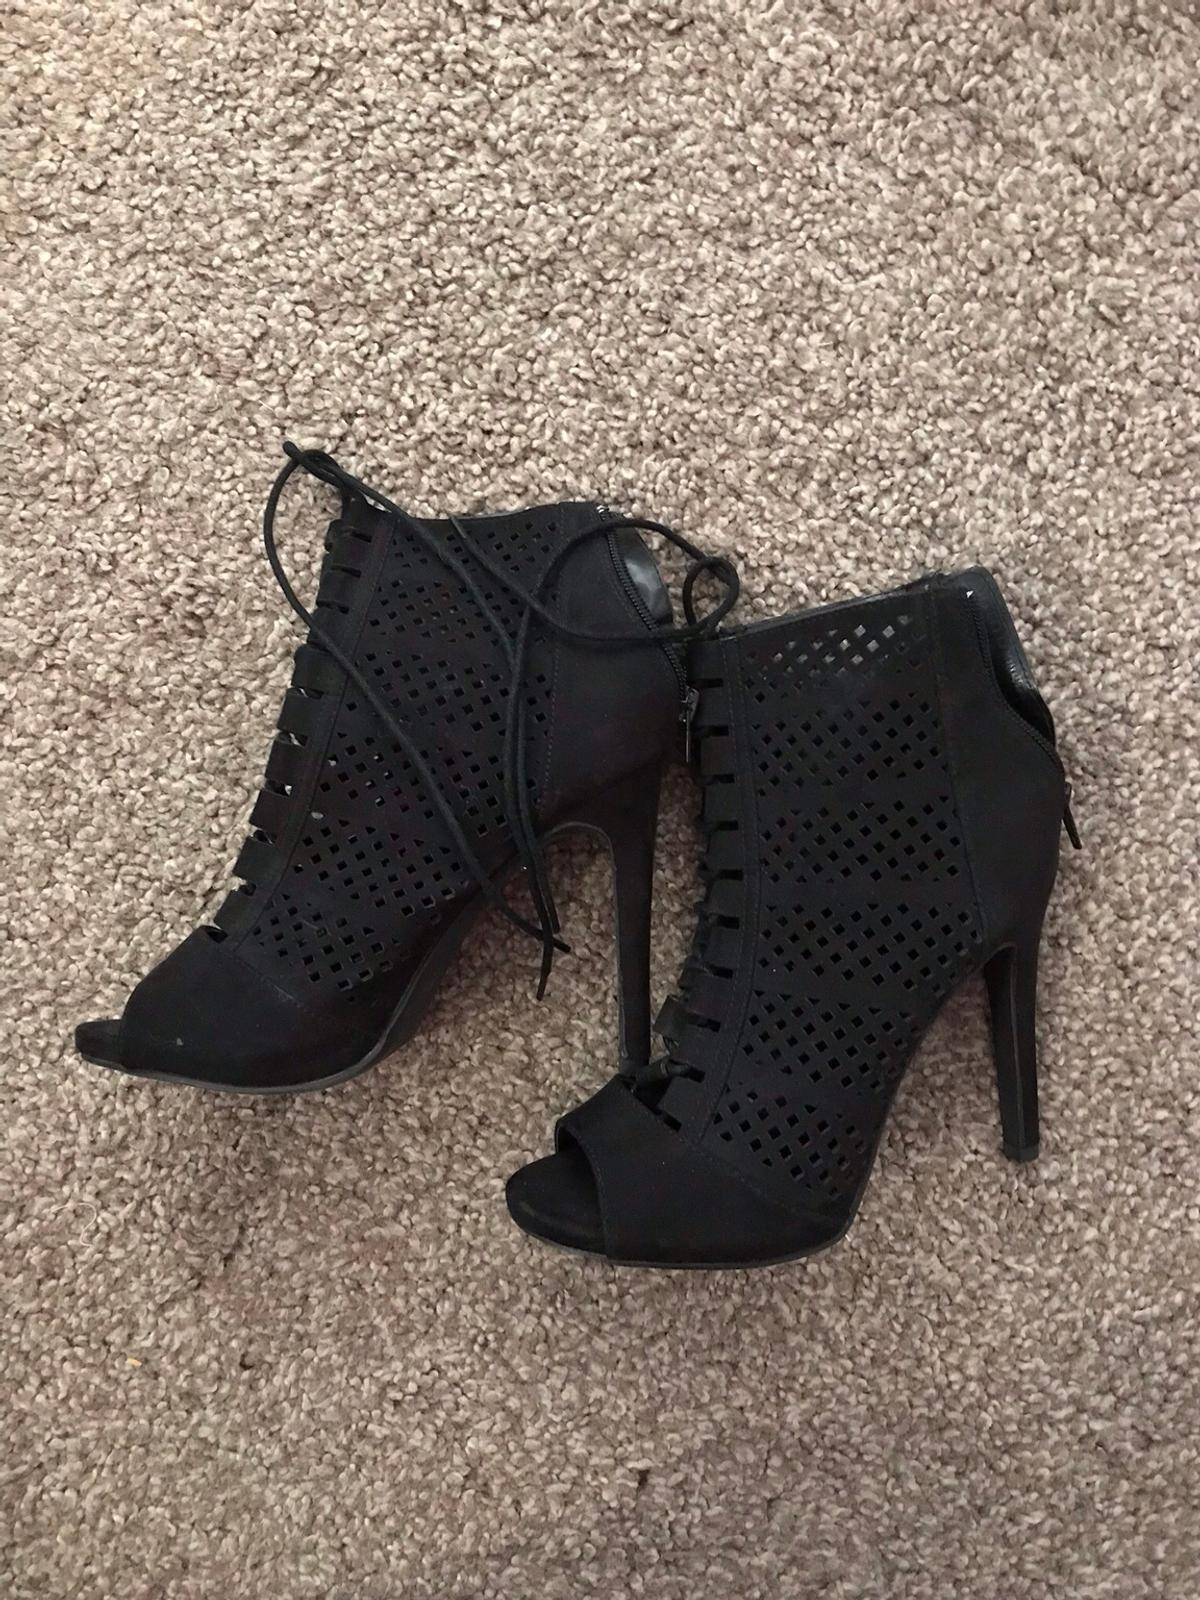 New look shoes size 5 worn once